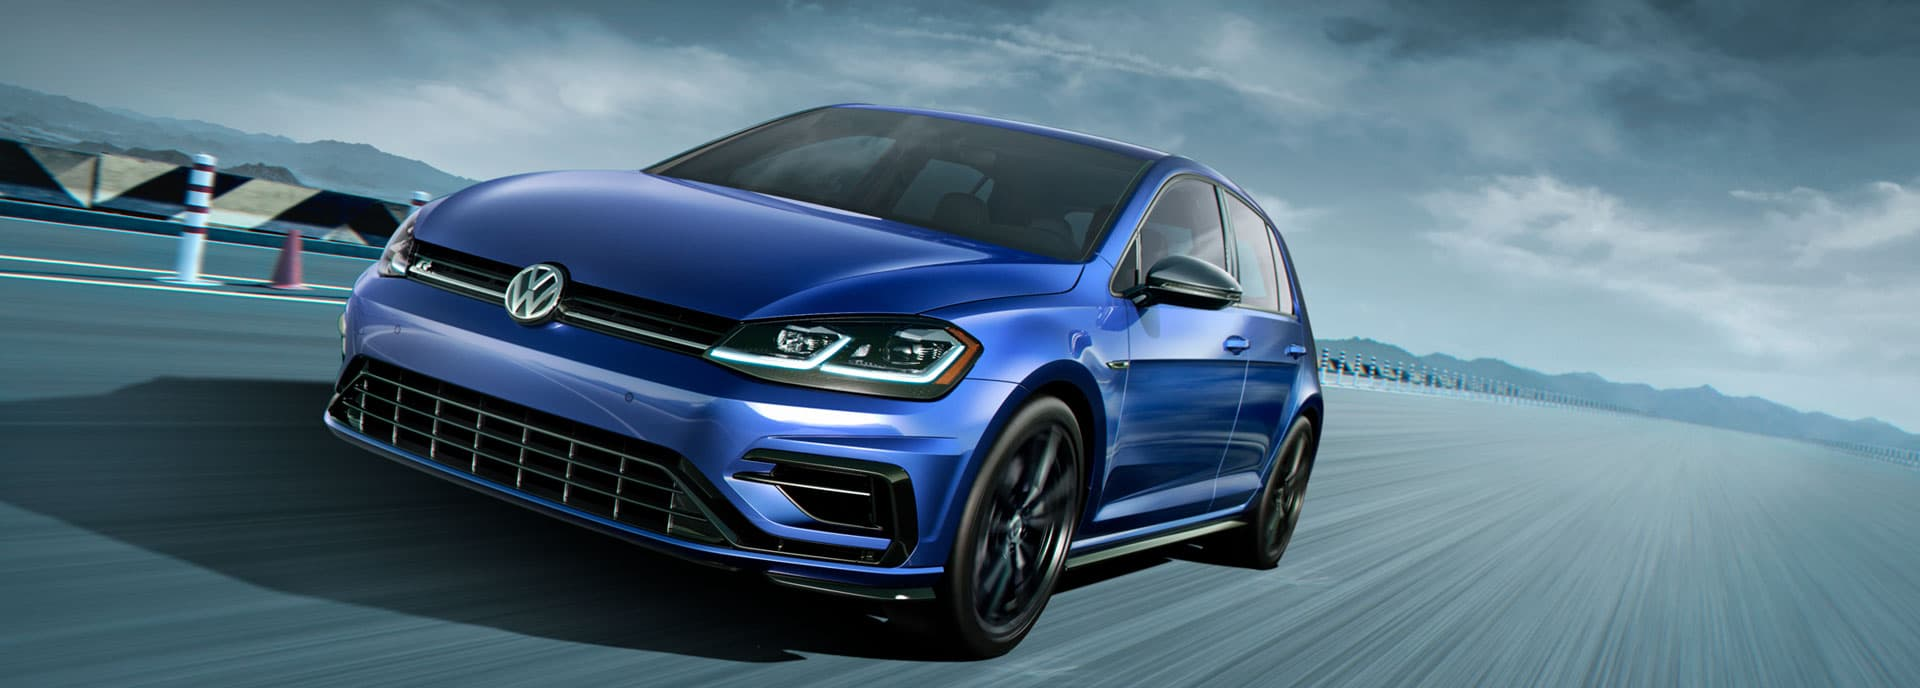 Volkswagen Golf R Hero Image